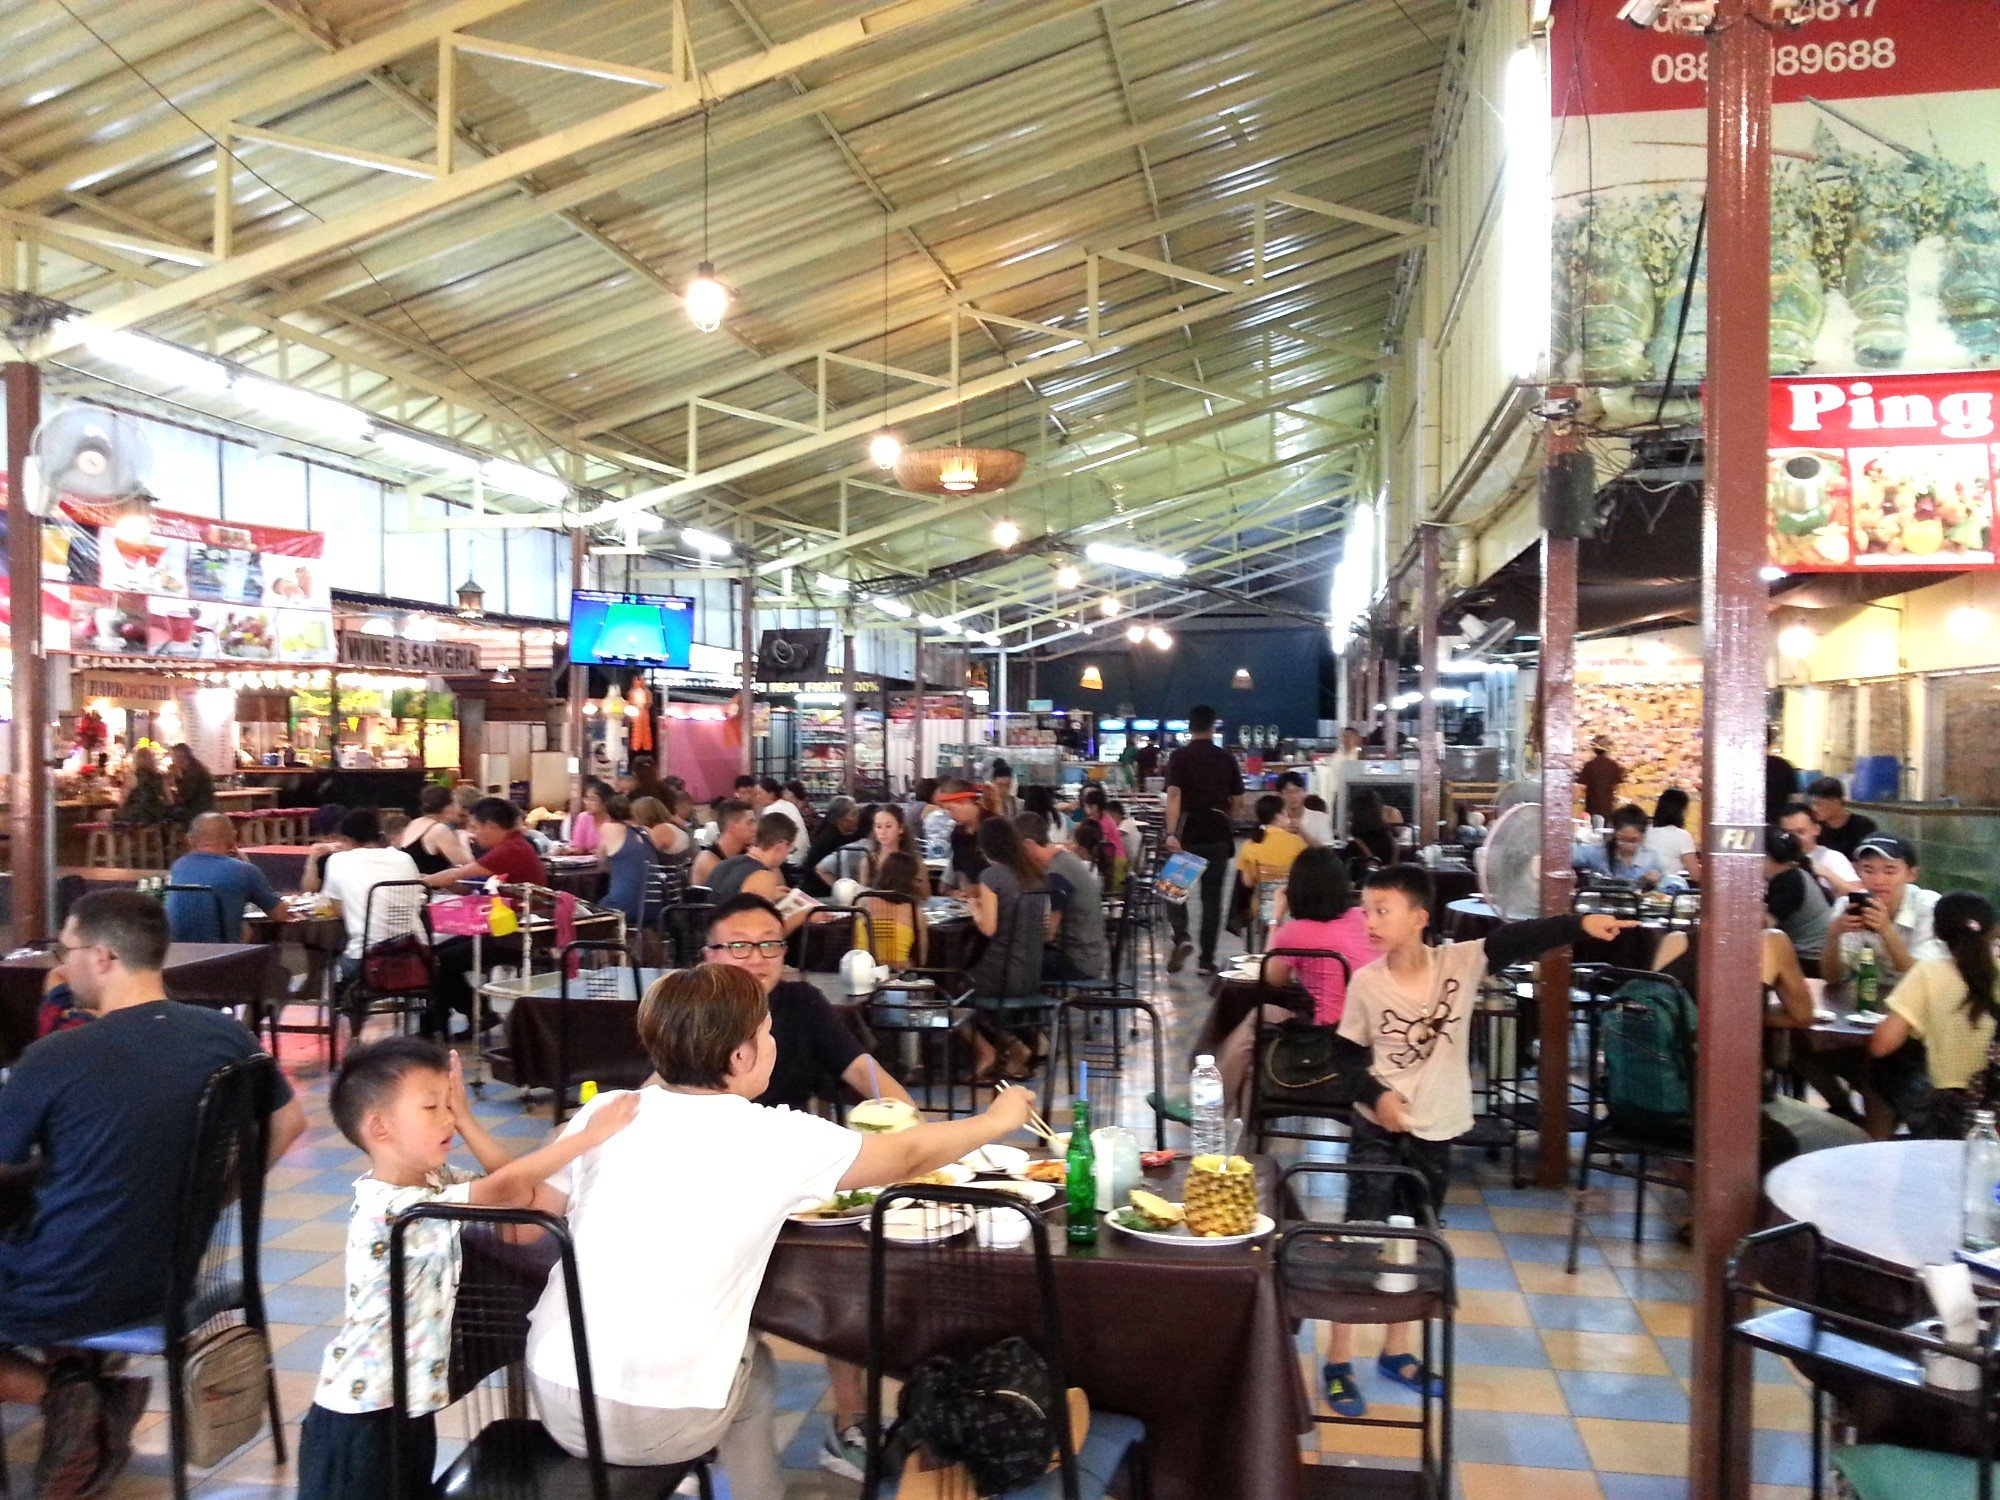 'soon aahaan' is the Thai word for a food court